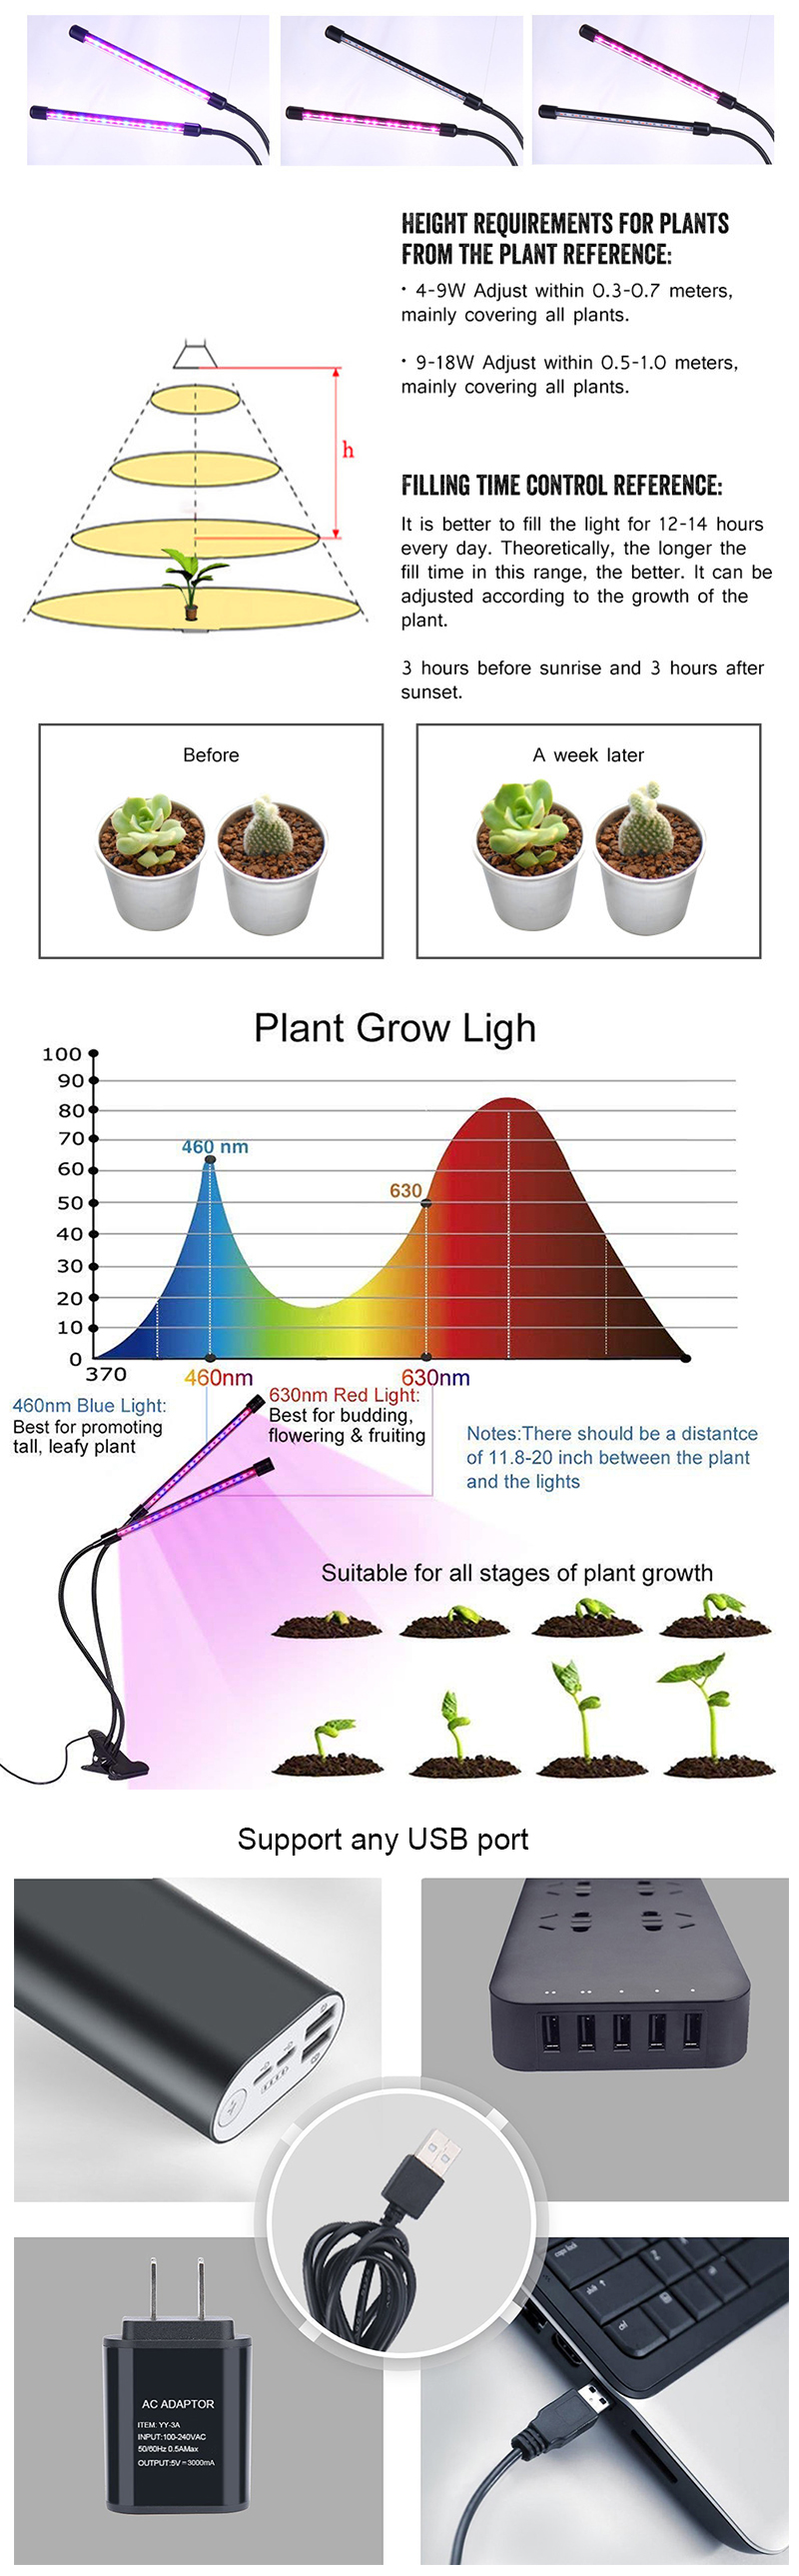 3 Led Grow Light 6W Lamps For Plants Full Spectrum Phyto Lamp Led Seedling Lights Indoor Plant Growing Greenhouse Flower Lamps